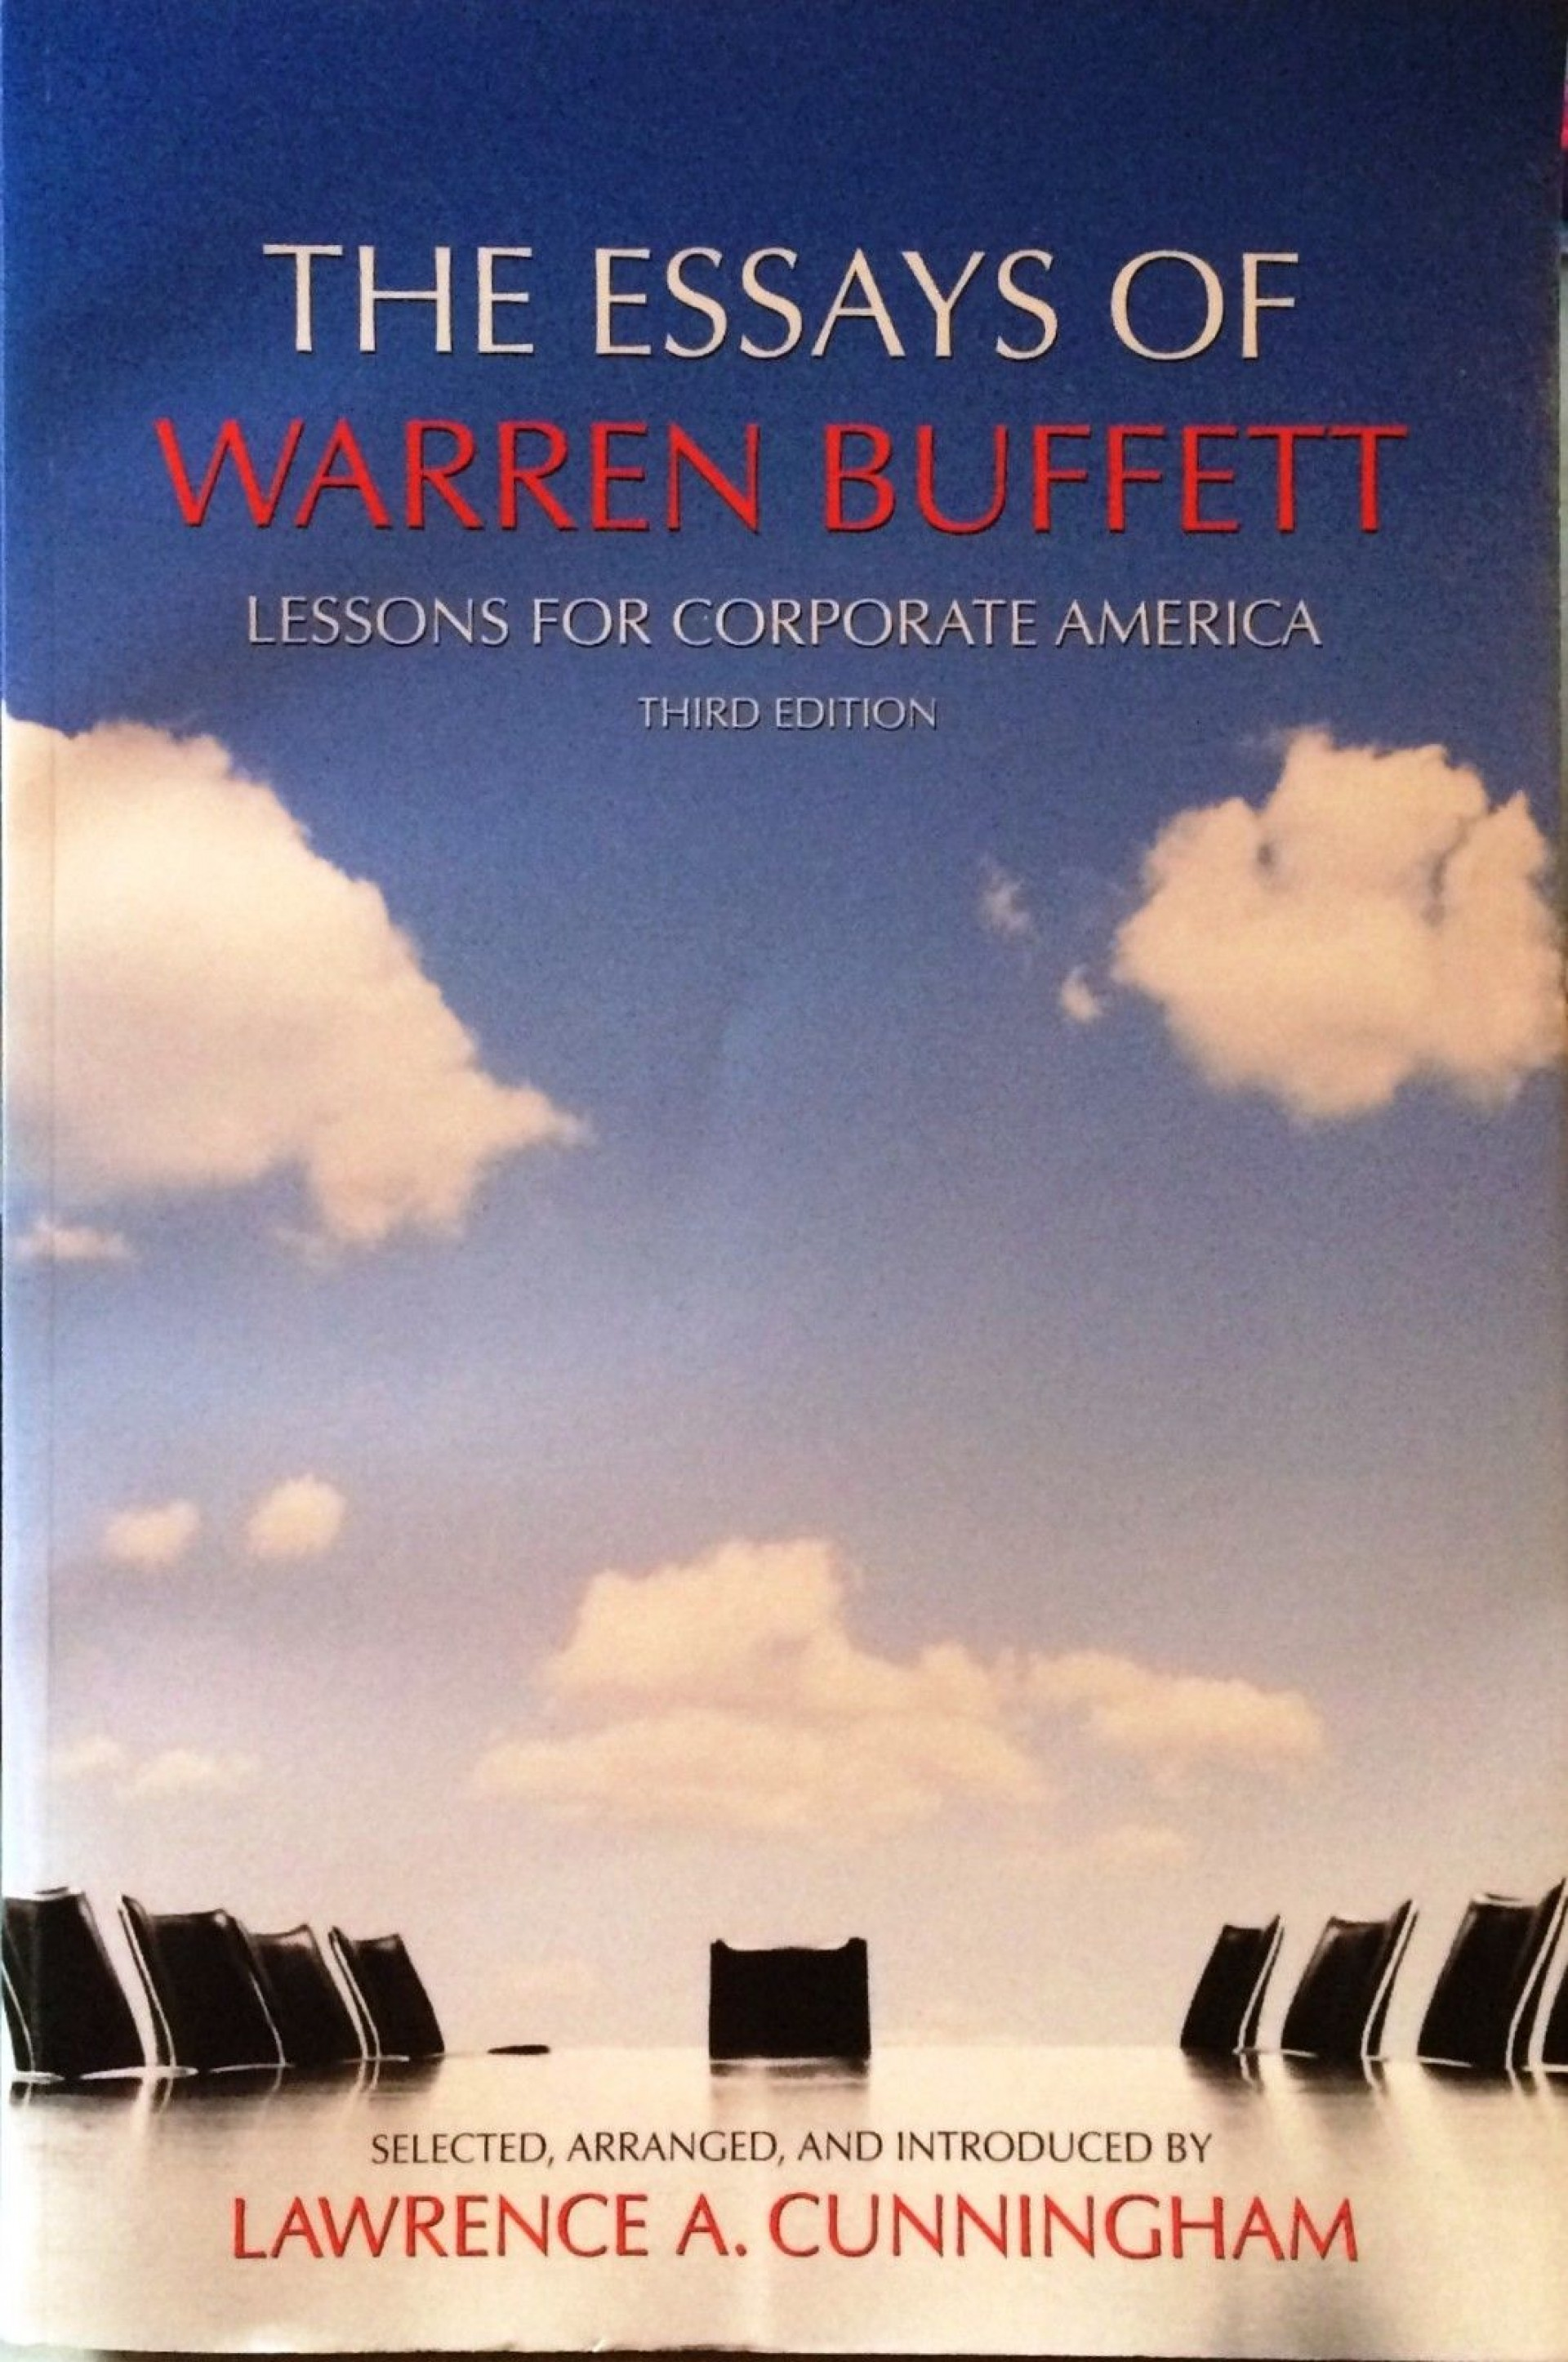 014 S L1600 Essay Example The Essays Of Warren Buffett Lessons For Corporate Remarkable America Third Edition 3rd Second Pdf Audio Book 1920